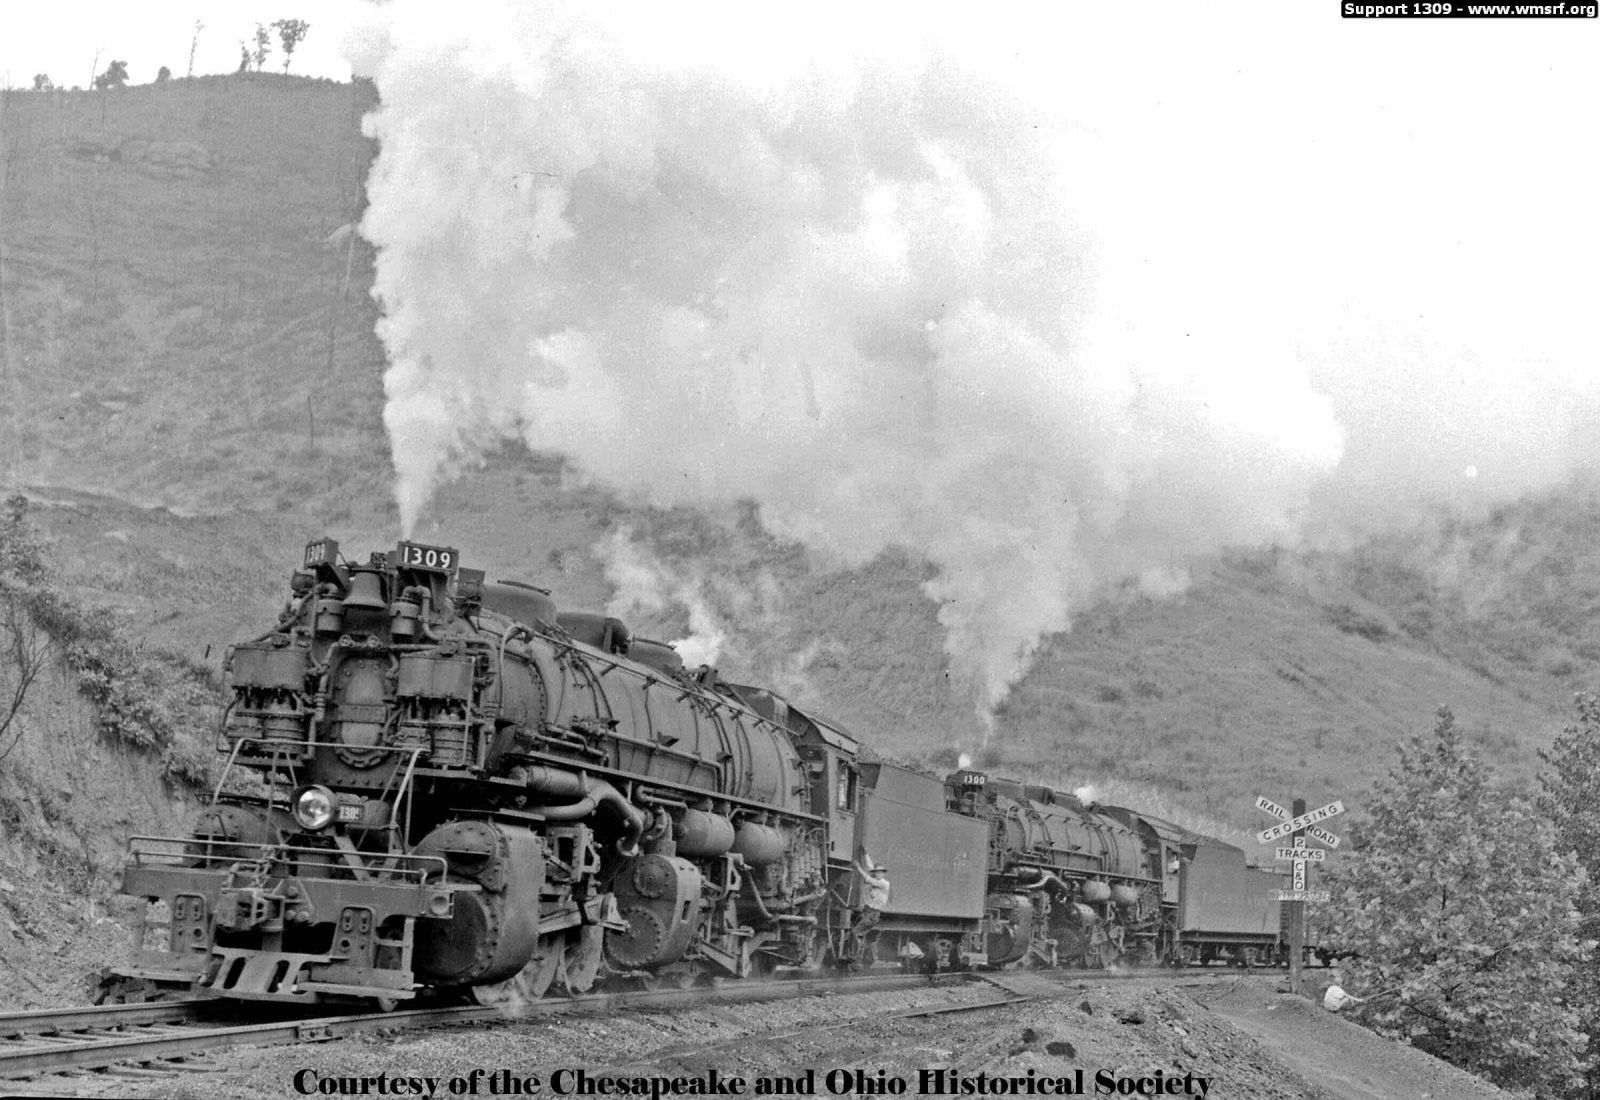 B o railroad museum announces the transfer of chesapeake ohio steam locomotive to western maryland scenic railroad for restoration and operation